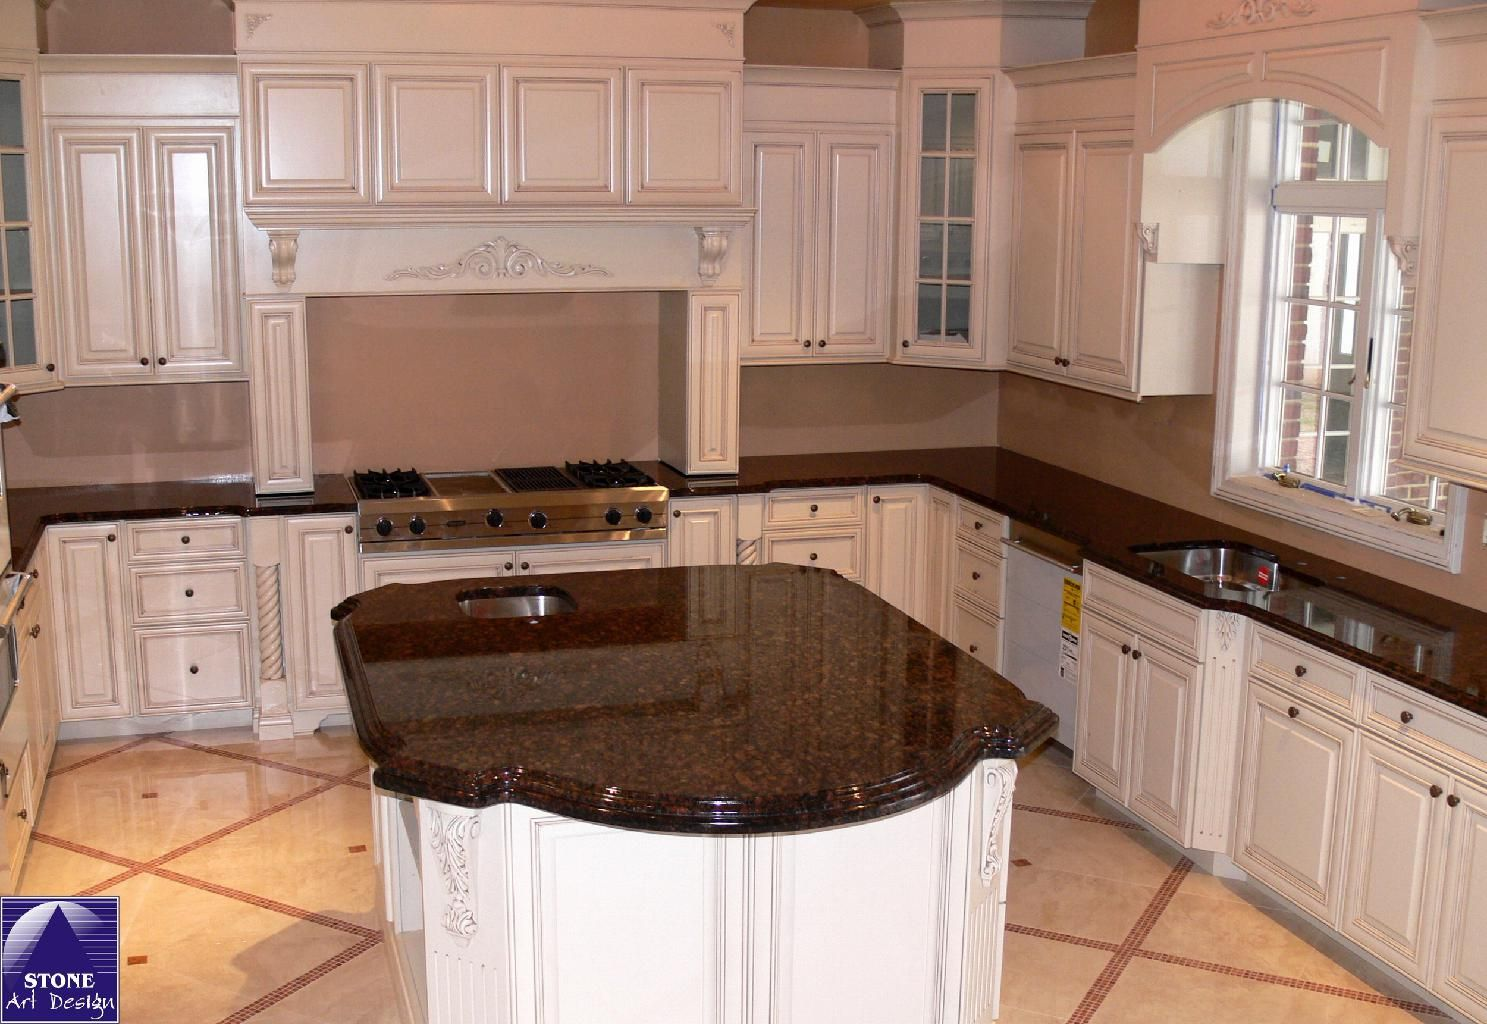 Tan Brown Granite Countertops Kitchen Our Granite With White Cabinets And Lighter Backsplash Could Tie